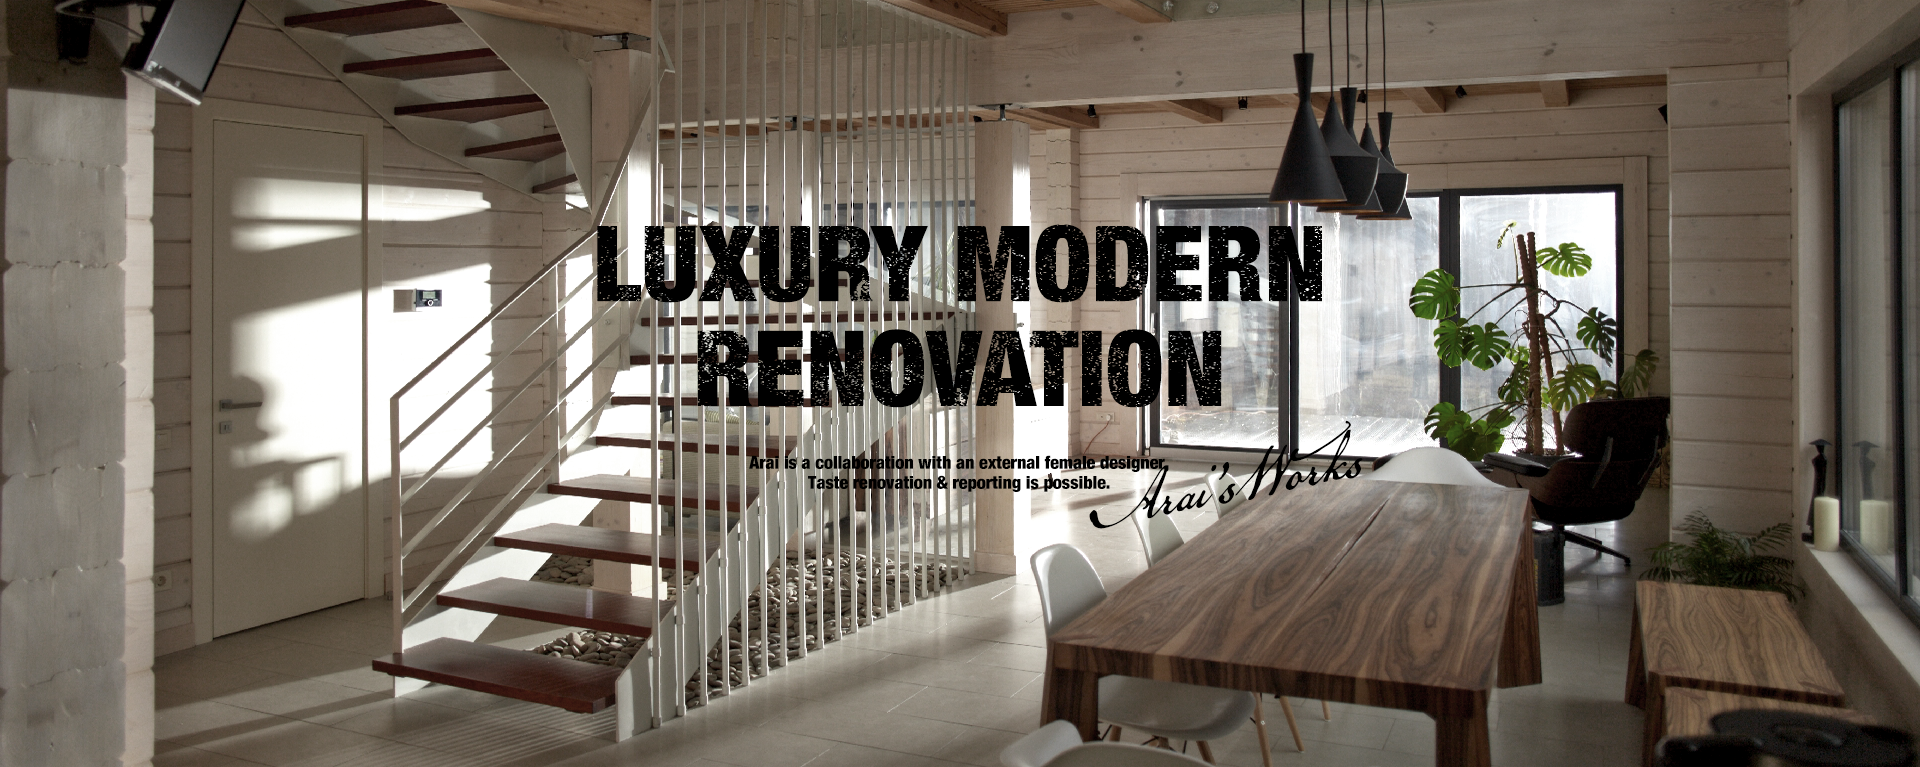 LUXURY MODERN RENOVATION